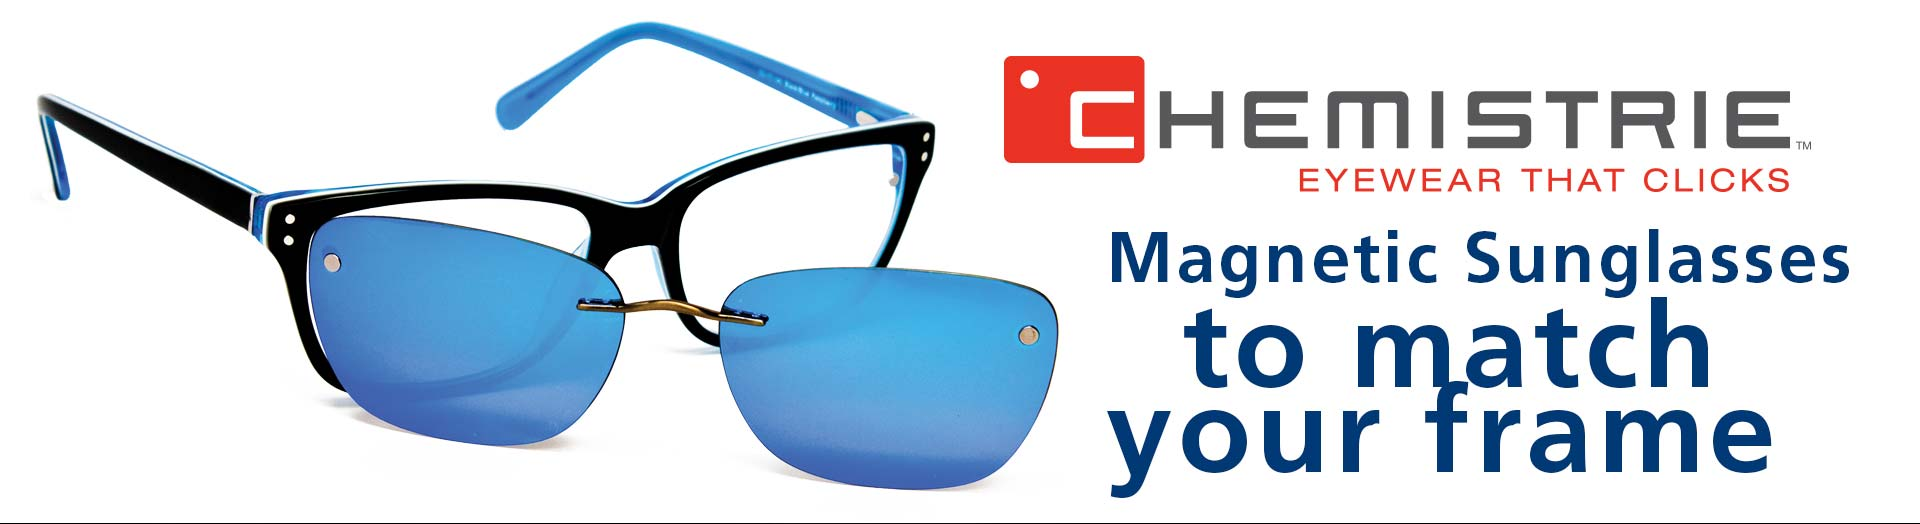 Chemistrie - Eyewear that clicks